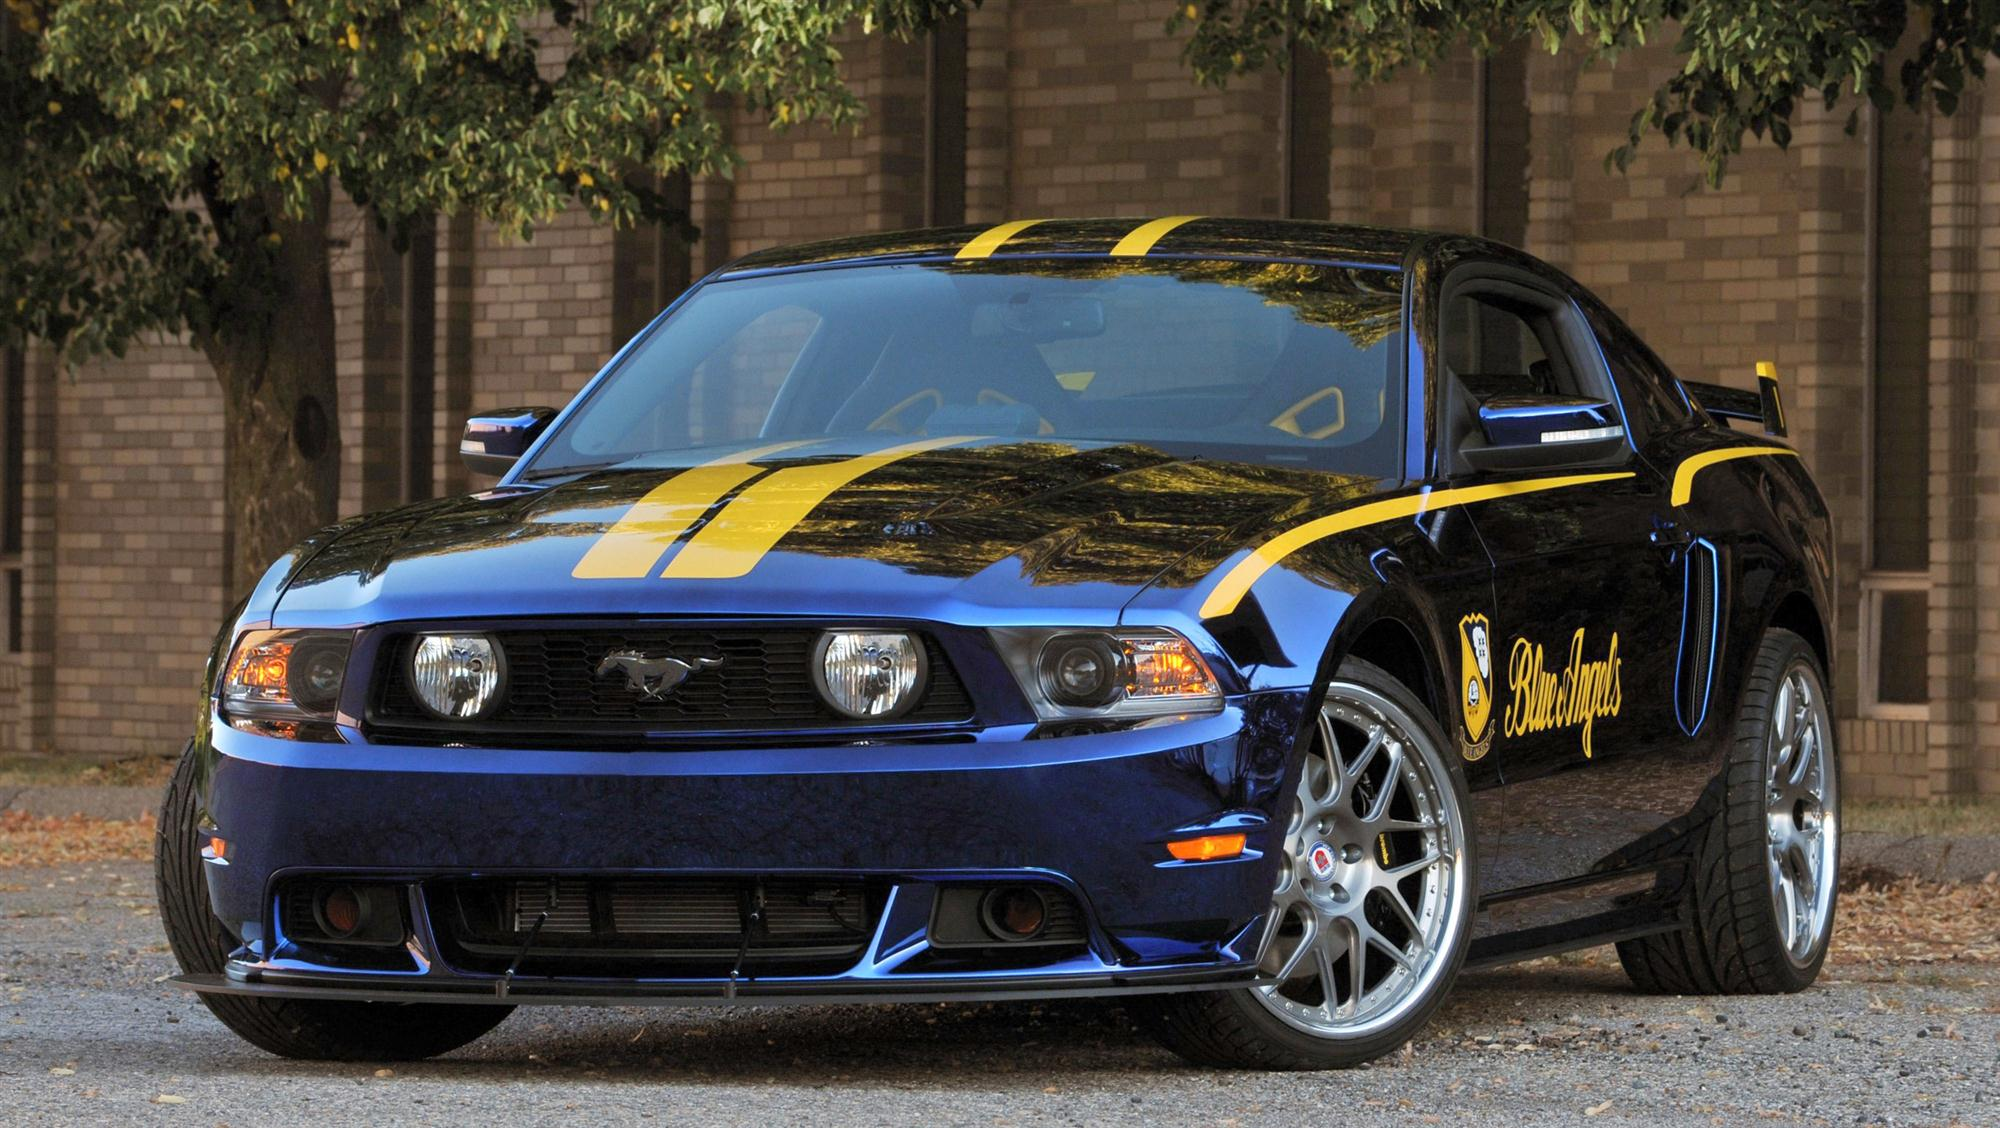 2012 ford blue angels mustang gt fetches 400 000 at auction. Black Bedroom Furniture Sets. Home Design Ideas